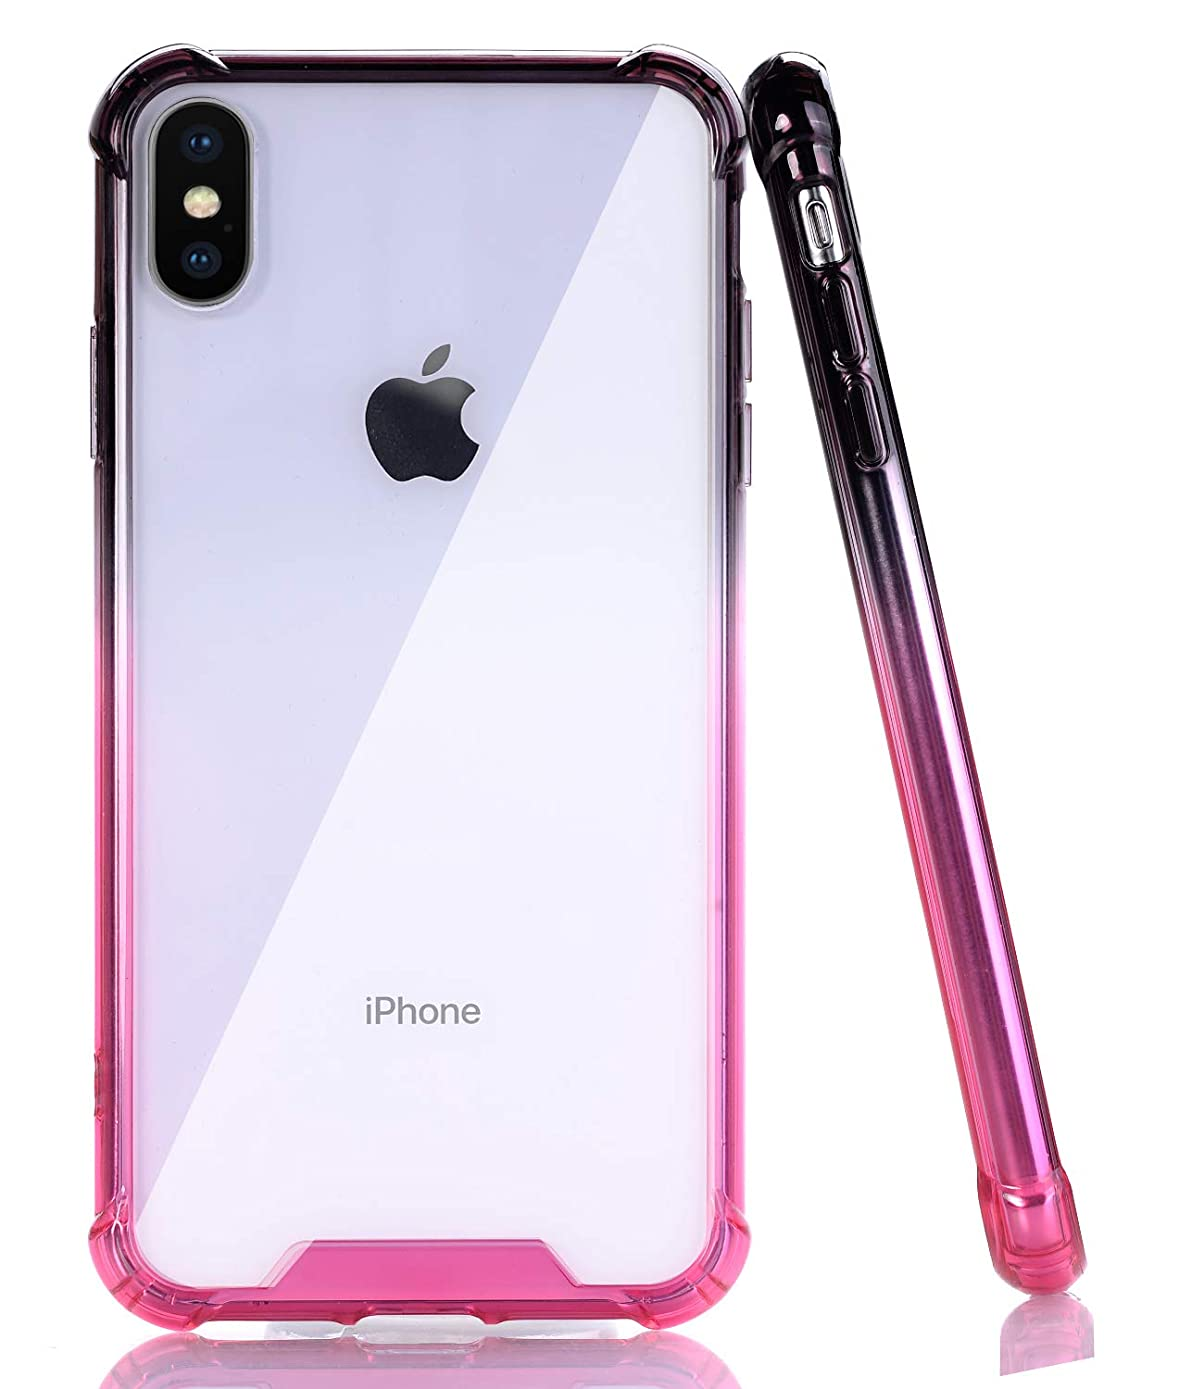 BAISRKE iPhone X Case, Black Pink Gradient Shock-Absorption TPU Soft Edge Bumper Anti-Scratch Rigid Slim Protective Cases Hard Plastic Back Cover for iPhone X iPhone Xs [5.8 inch]